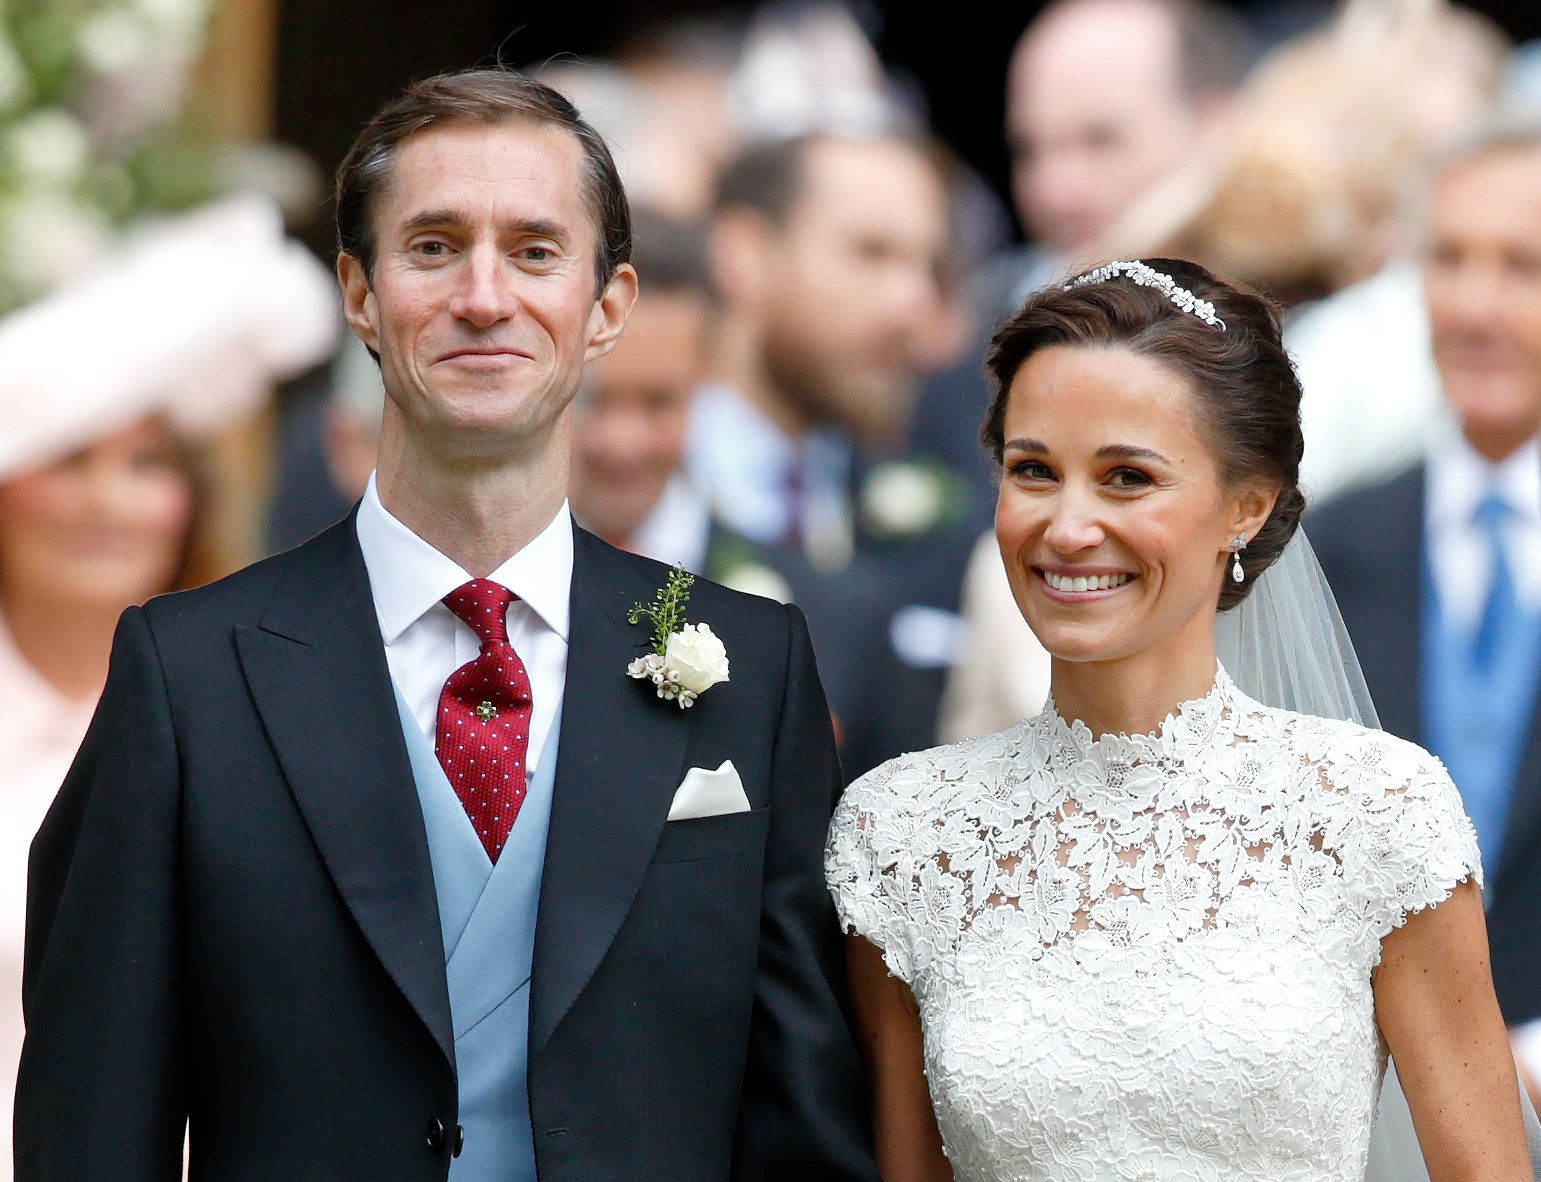 James Matthews and Pippa Middleton leave St Mark's Church after their wedding on May 20, 2017, in Englefield Green, England | Photo:Getty Images